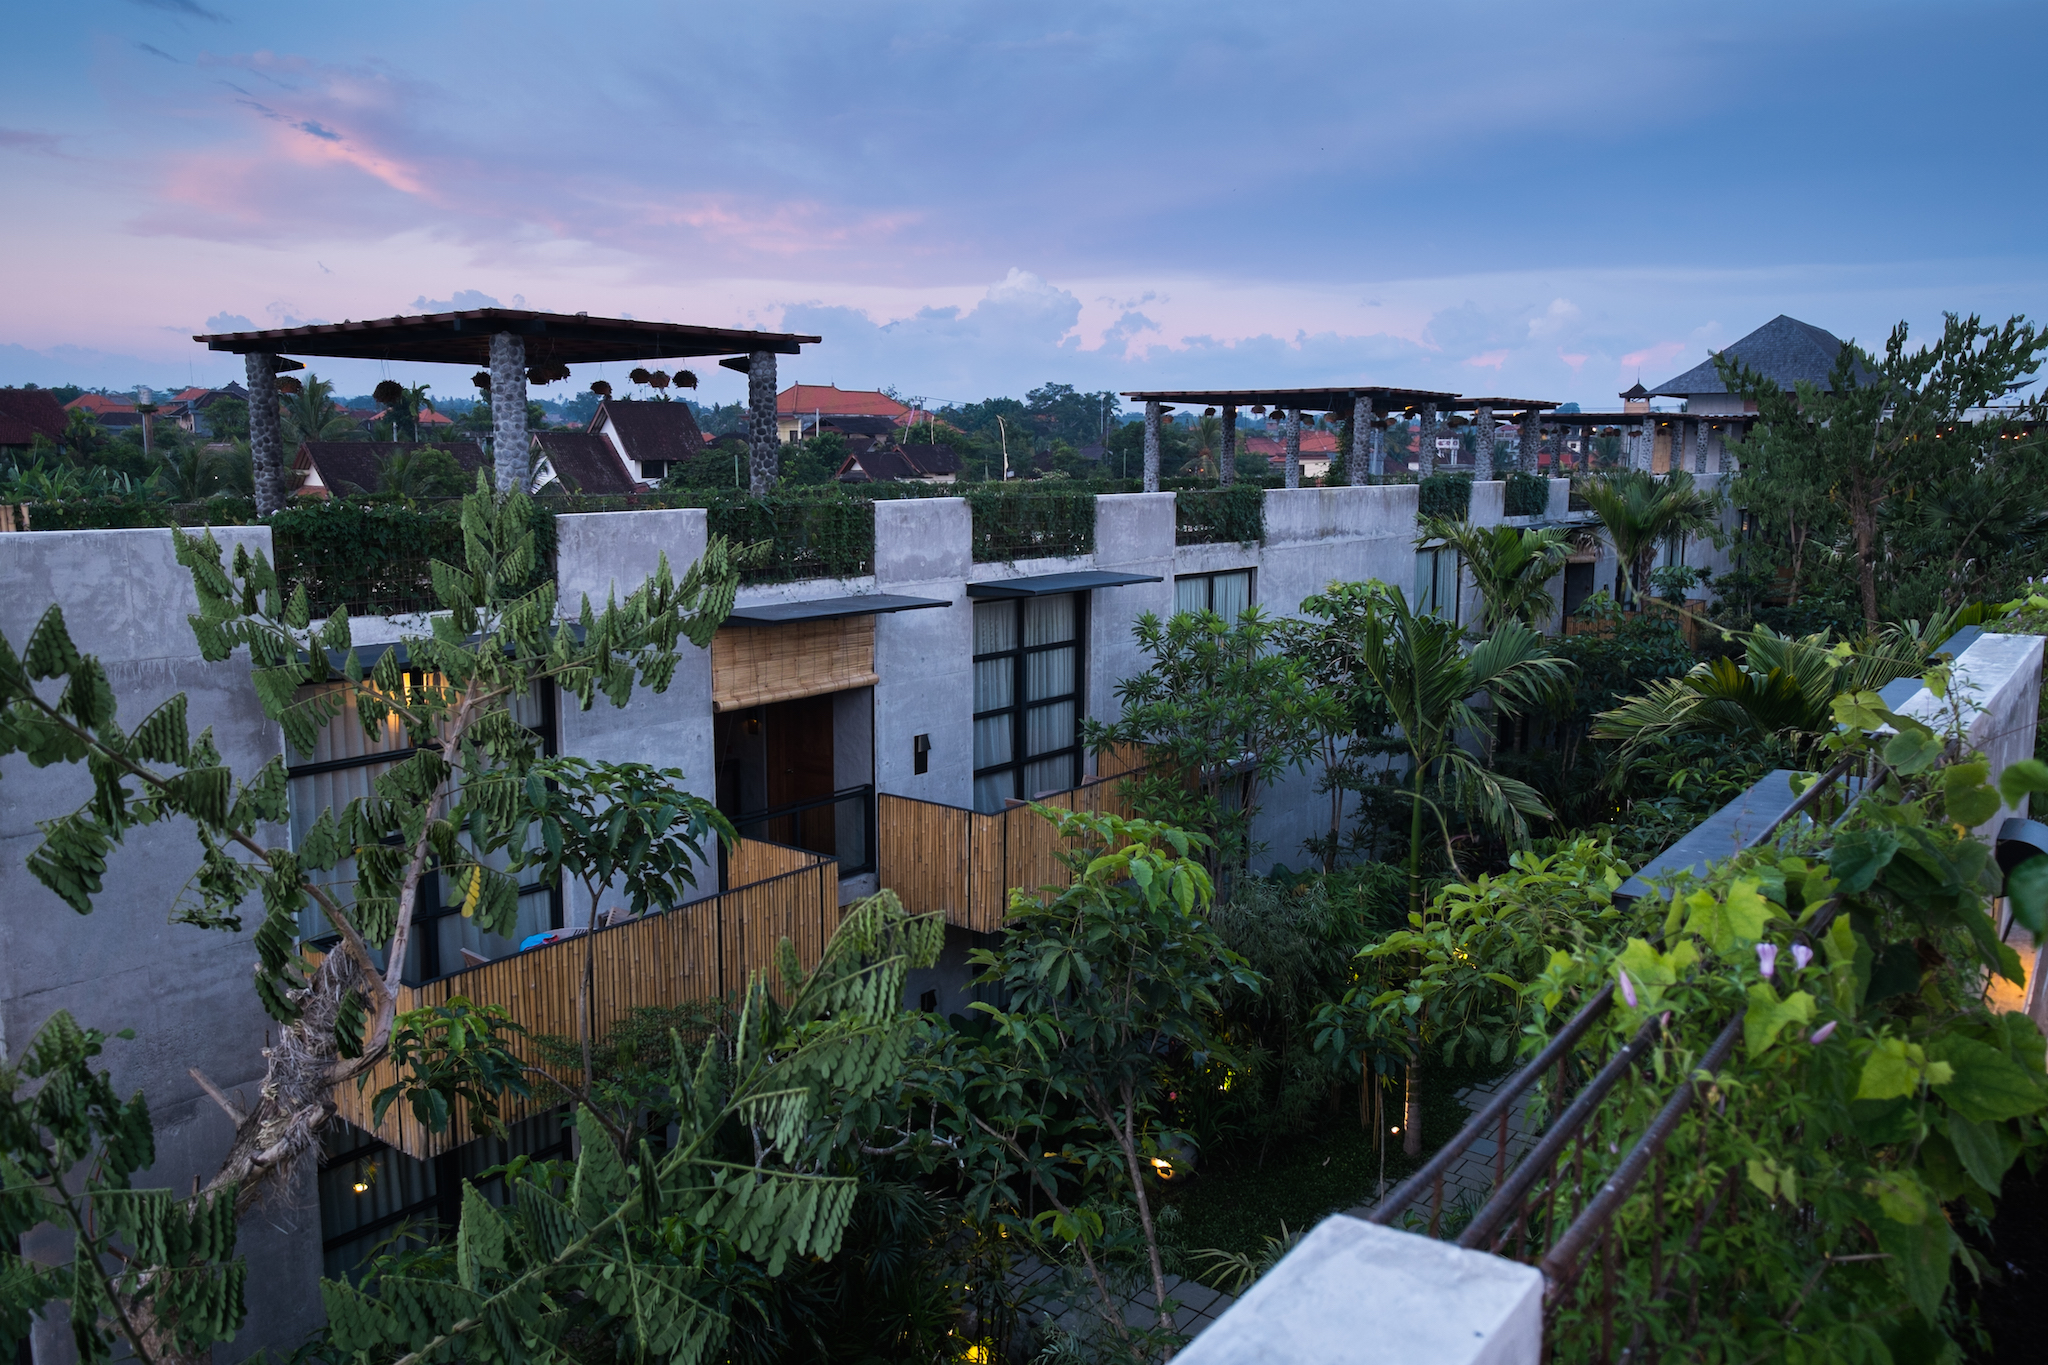 Bisma eight a boutique hotel experience in ubud top for Design boutique hotel ubud